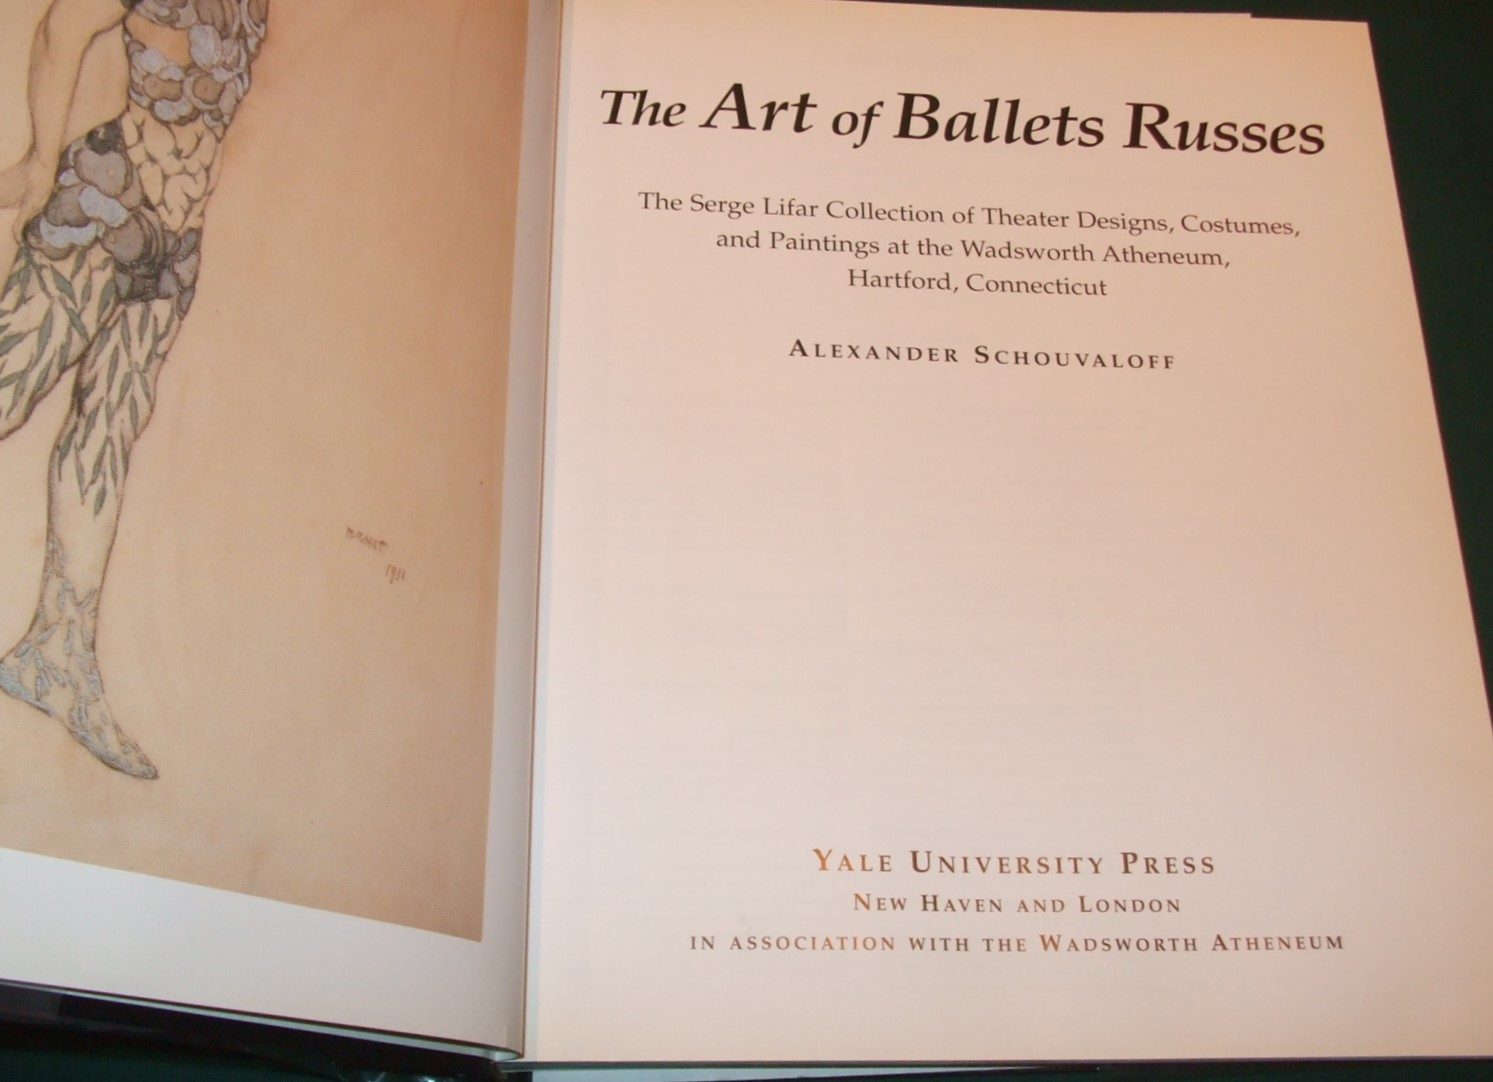 Image for The Art of Ballets Russes: The Serge Lifar Collection of Theater Designs, Costumes and Paintings at the Wadsworth Atheneum